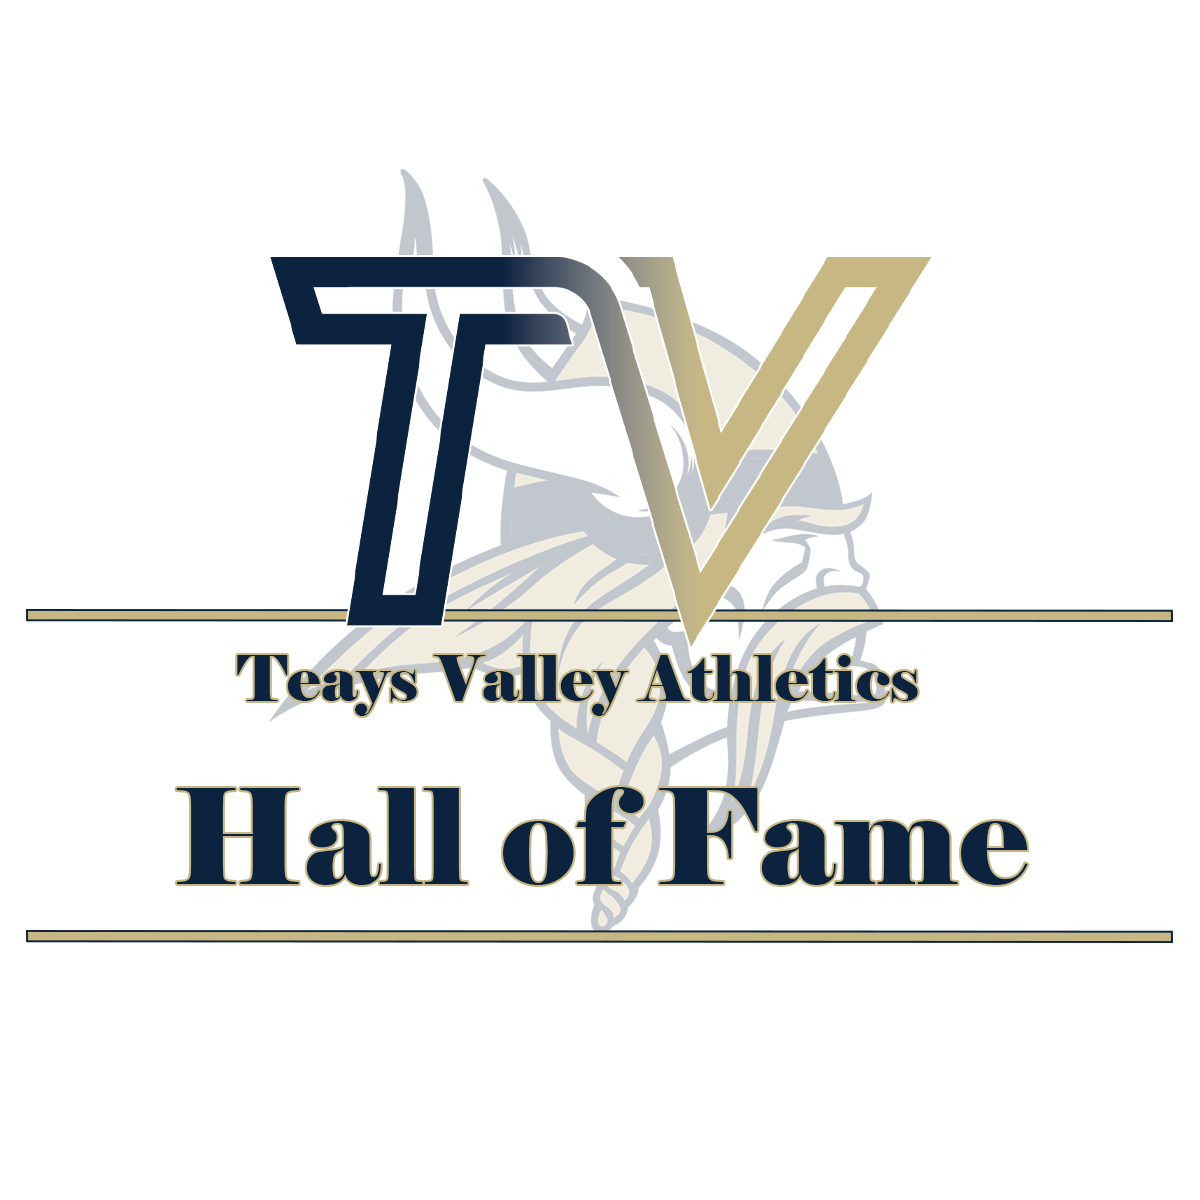 Athletic Hall of Fame Contact Info Update